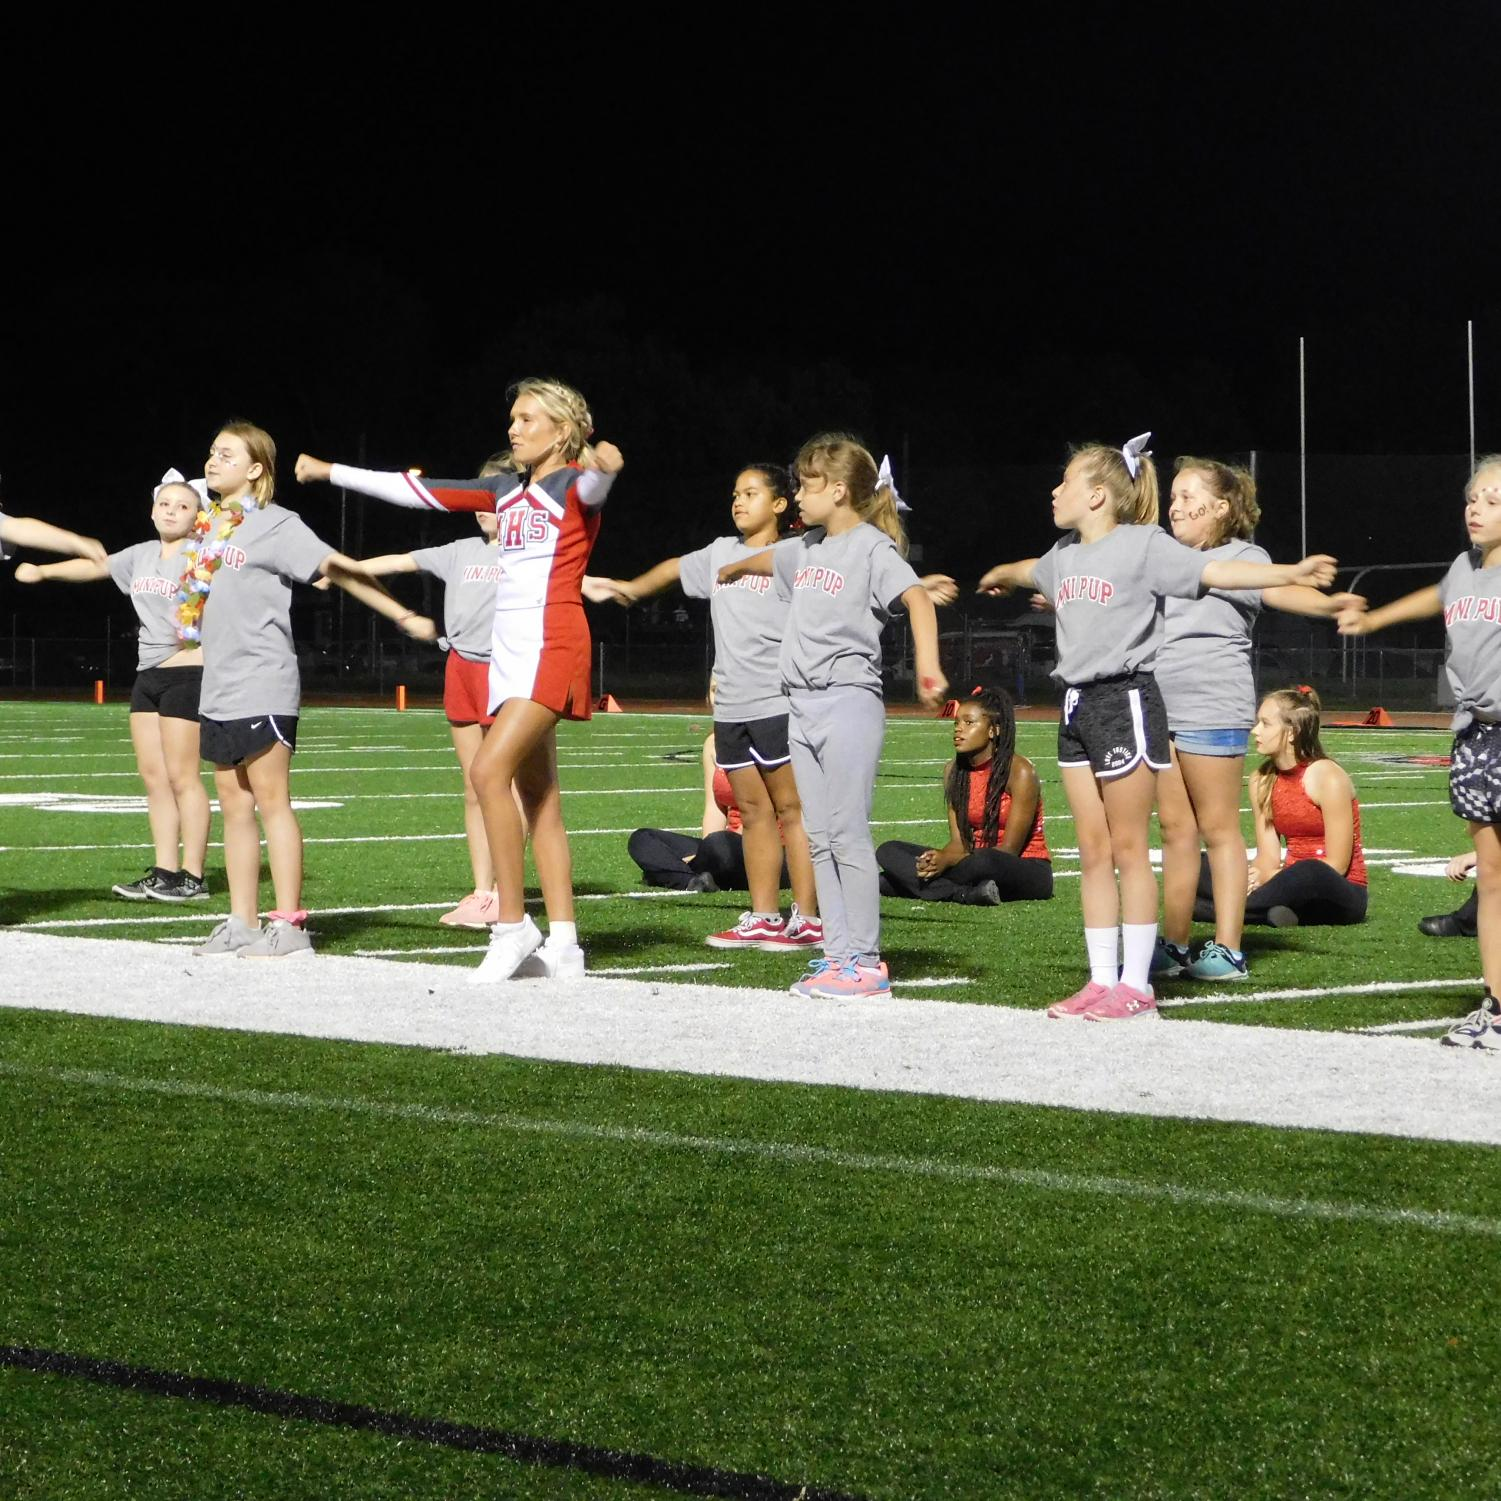 McPherson High School cheerleader,  with fifth through eighth graders, cheering to get the crowd pumped.